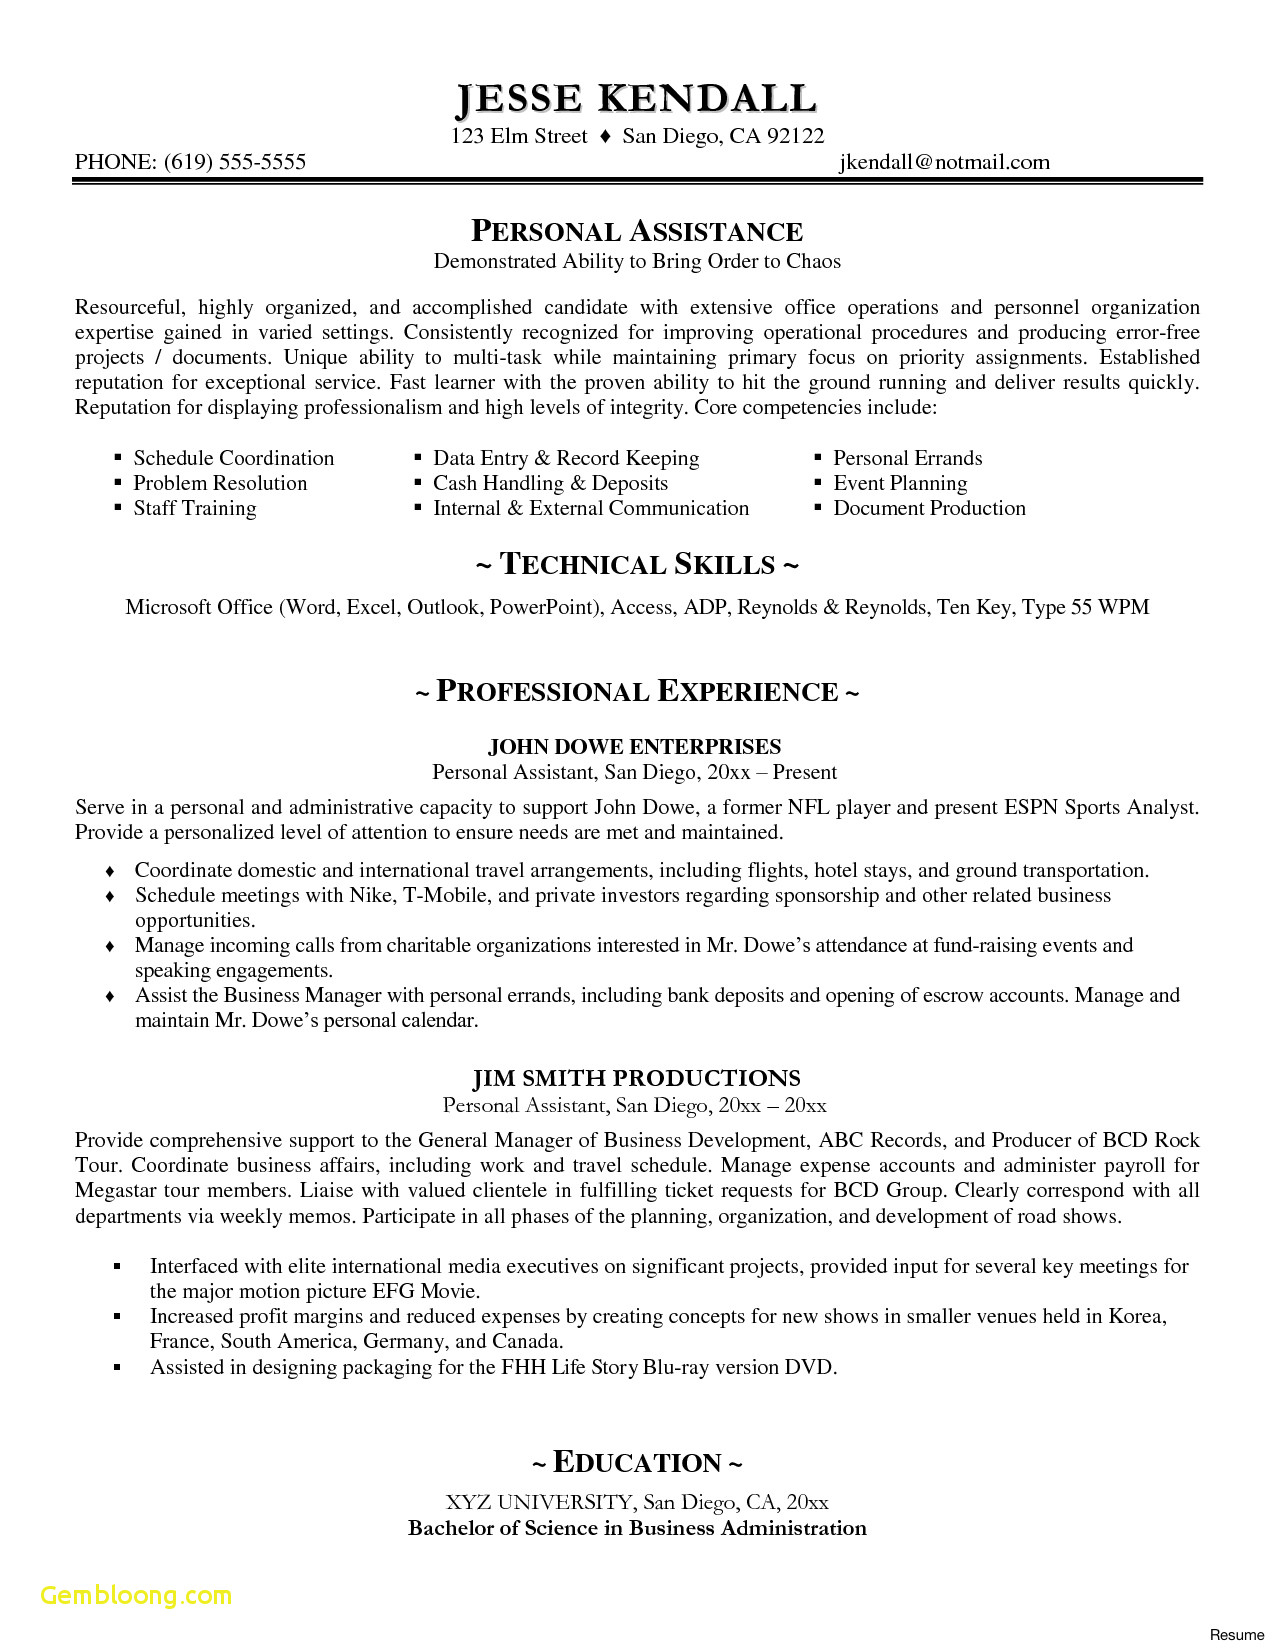 Business Cover Letter Template Microsoft Word - Resume Template Microsoft Word Download now Executive Resume